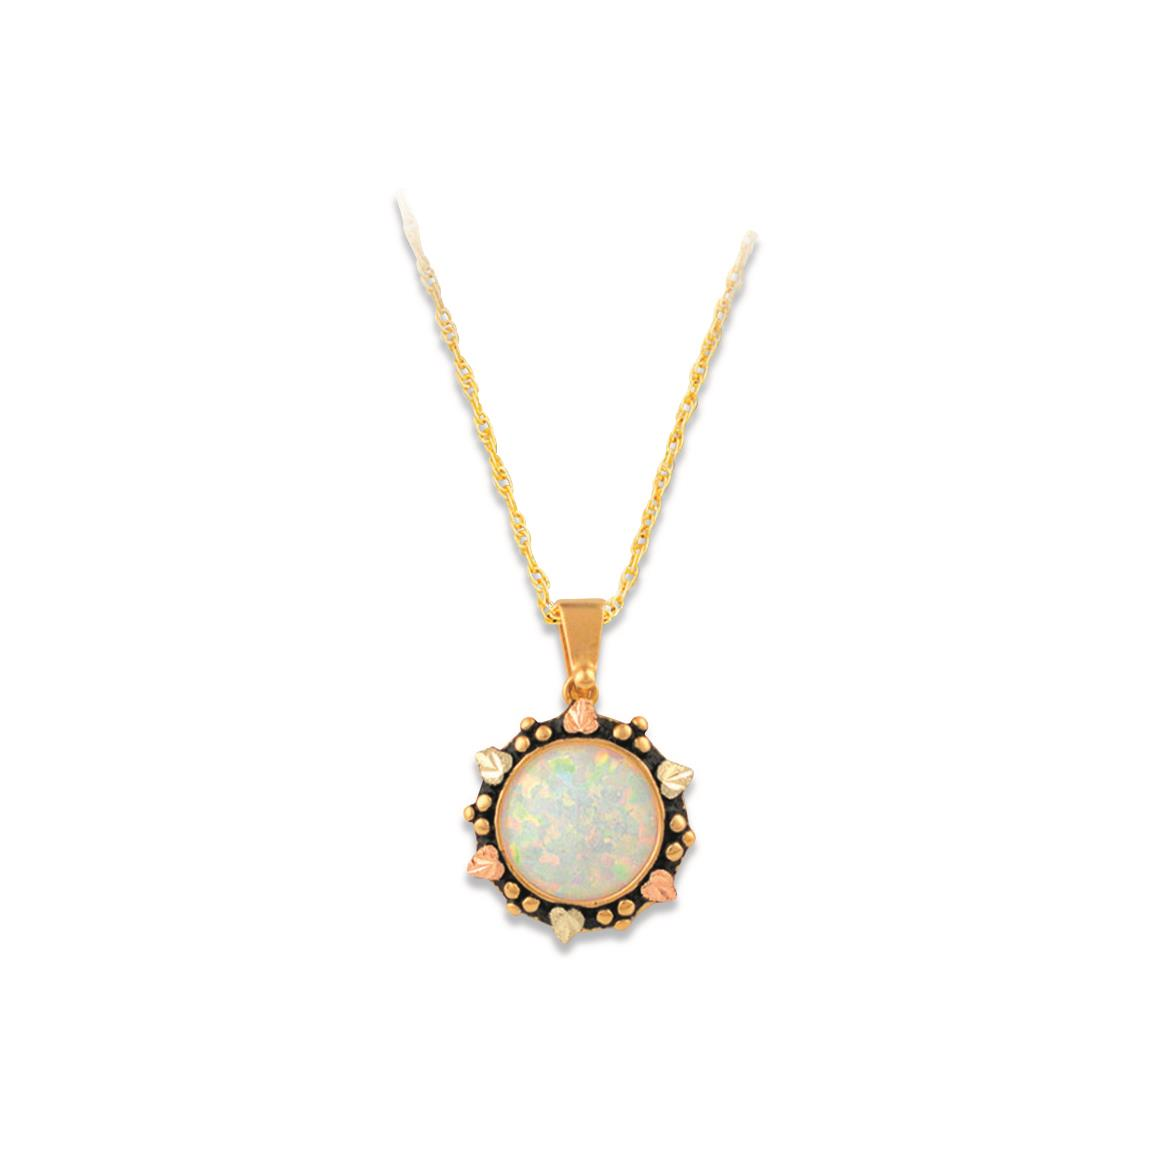 Landstrom's 10K Yellow Gold Pendant with Opal